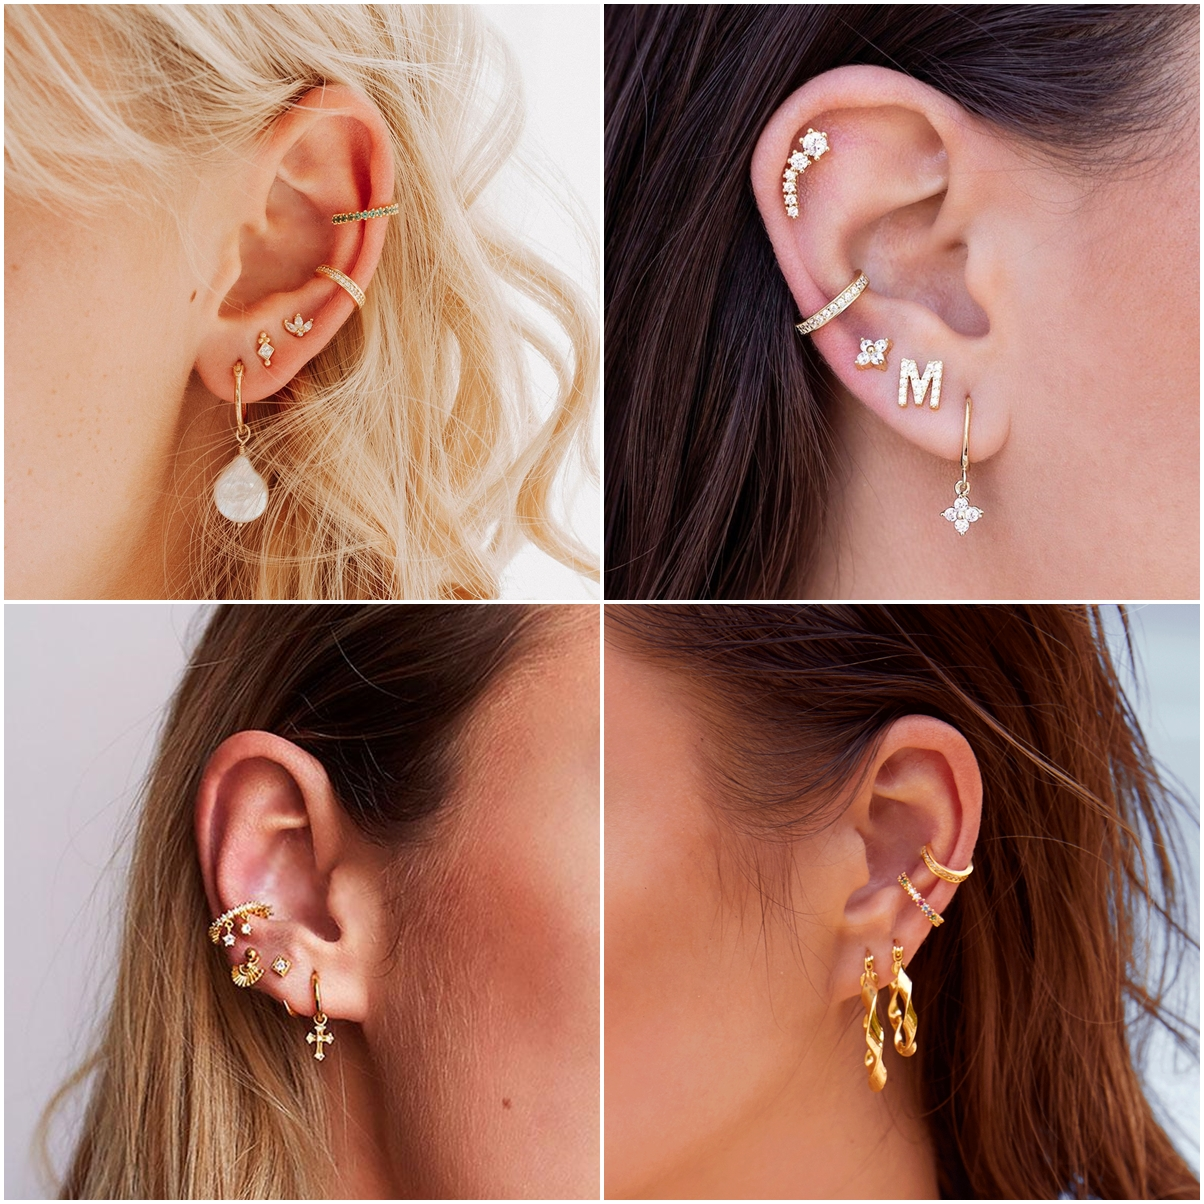 Trend Report: Ohrringe und Ear Cuffs